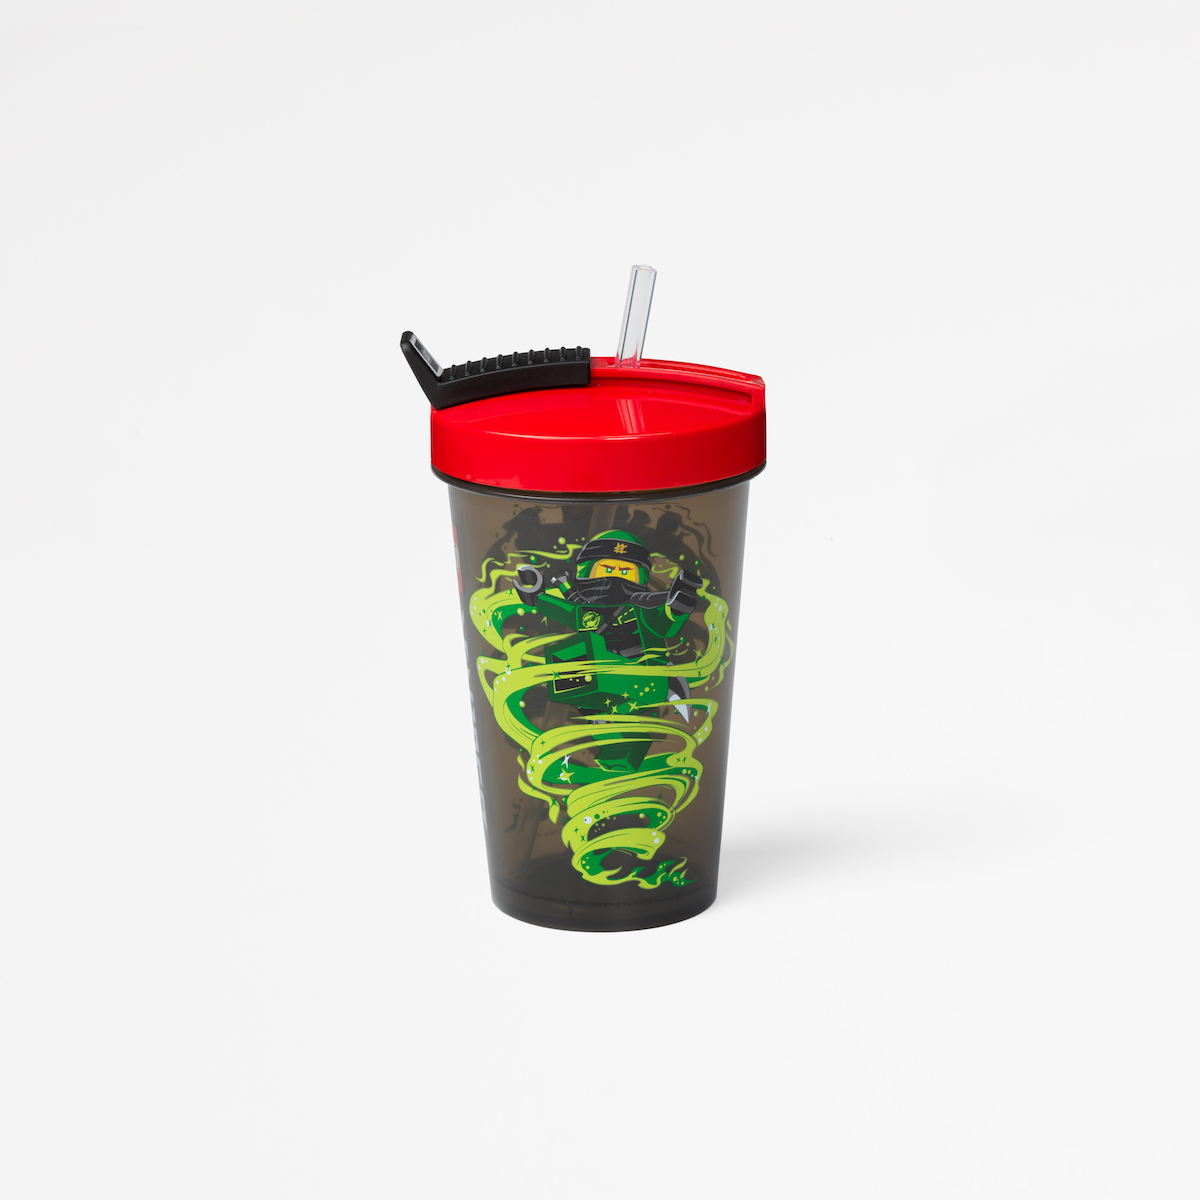 Lego tumbler with straw, plastic, lunch, children, playful, roomcopenhagen, red